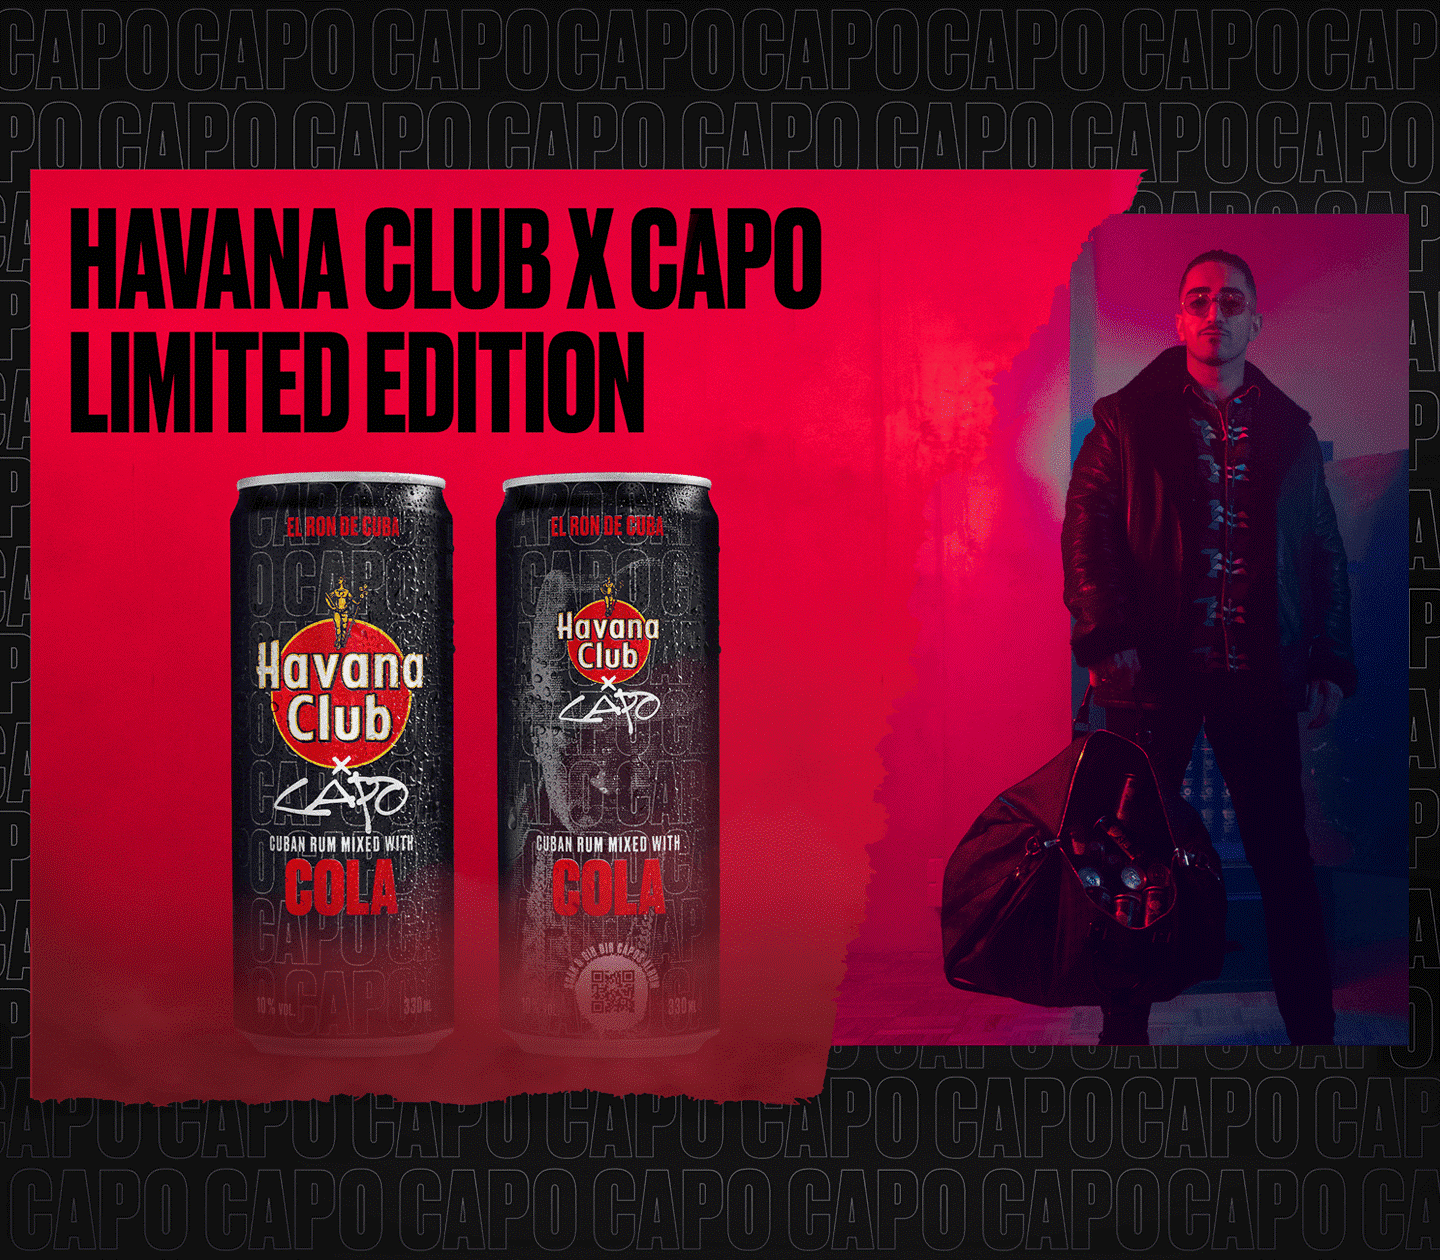 Havana Club x Capo KeyVisual final